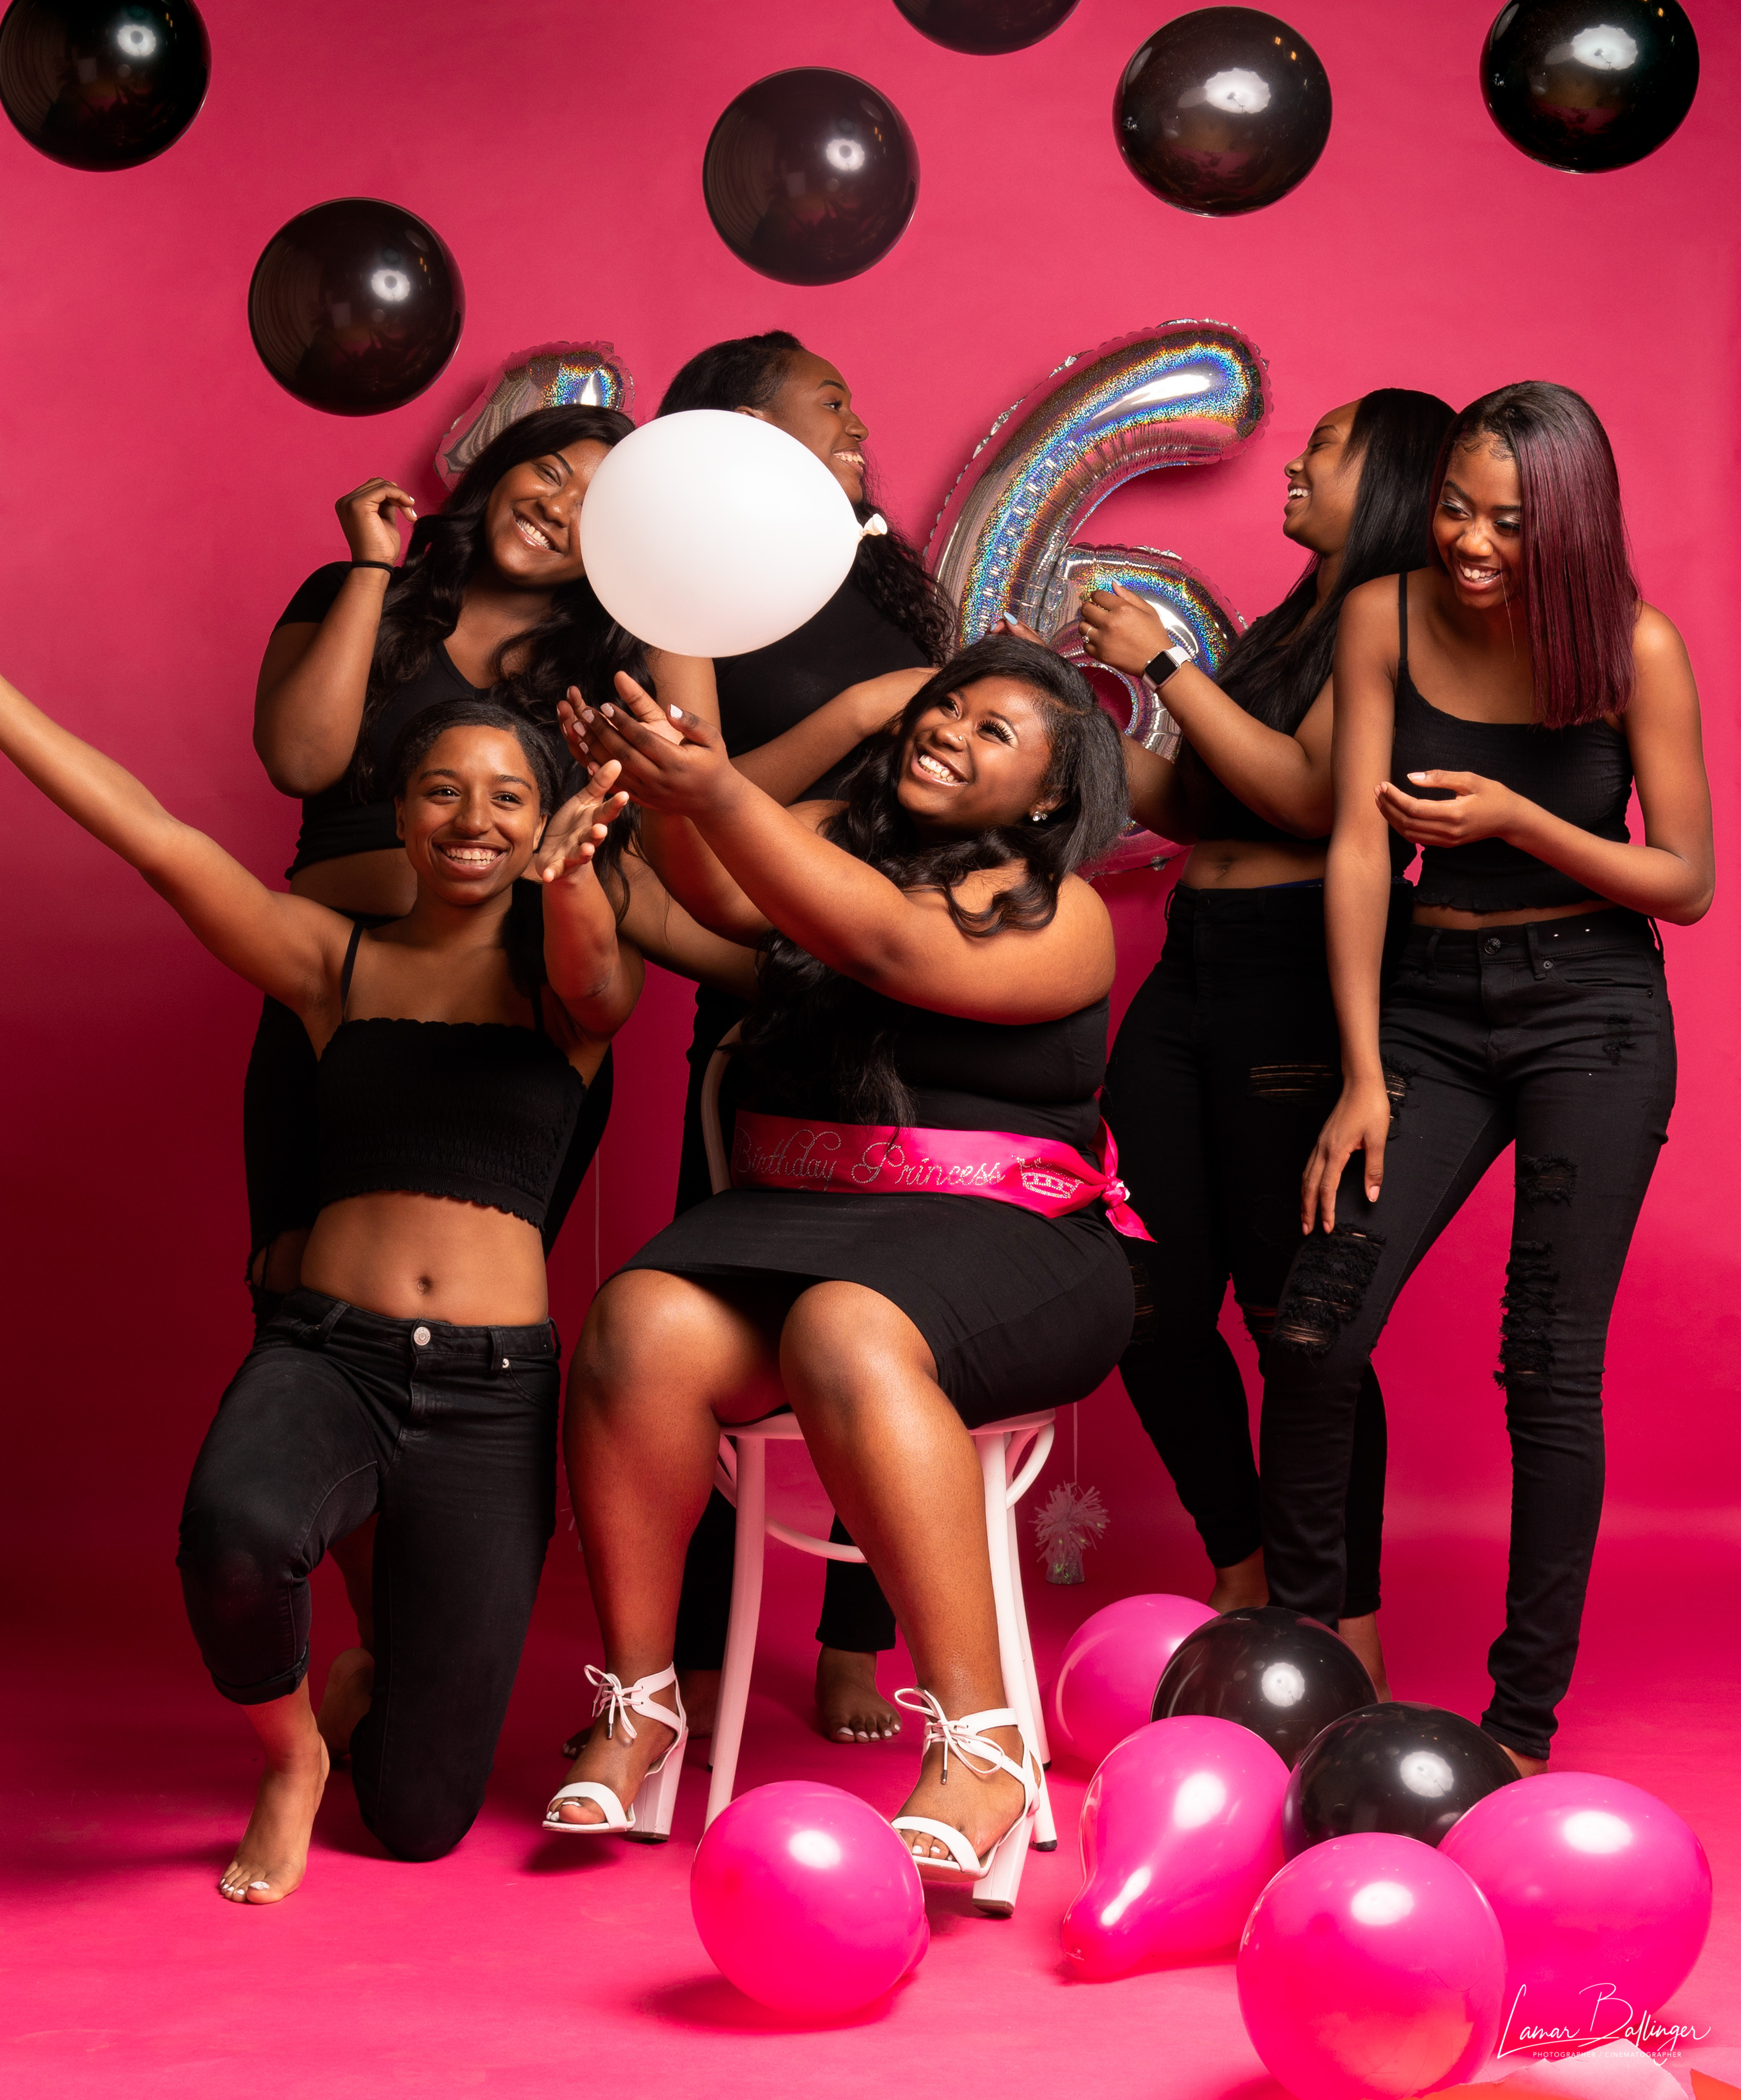 Birthday Photoshoot (10 Final Images)